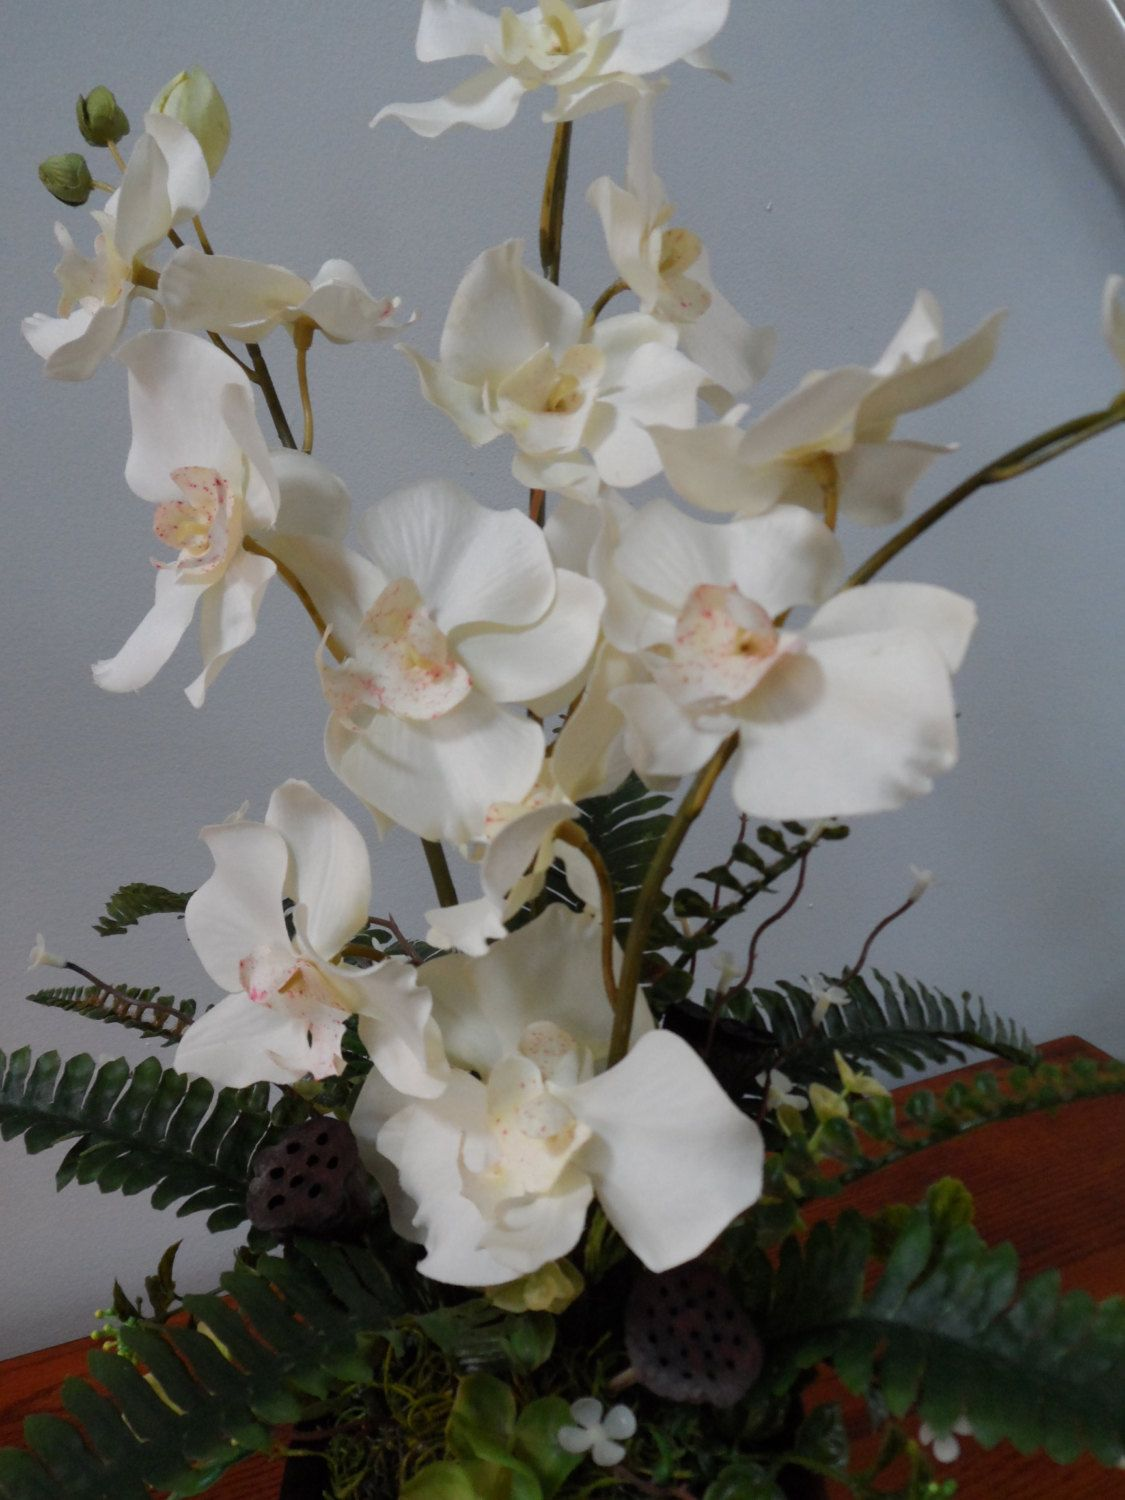 Orchid Arrangement White Orchid Arrangement Elegant Orchid Arrangement Orchid Floral Arrangement Elegan Orchid Arrangements Beautiful Orchids White Orchids